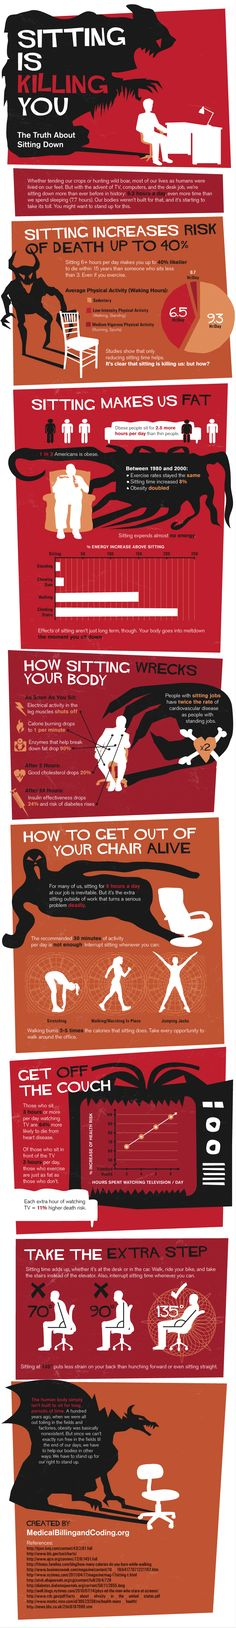 Sitting is terrible for your health. Find out how to avoid the increased risk of heart disease, obesity, hypertension, and diabetes from sitting too much.